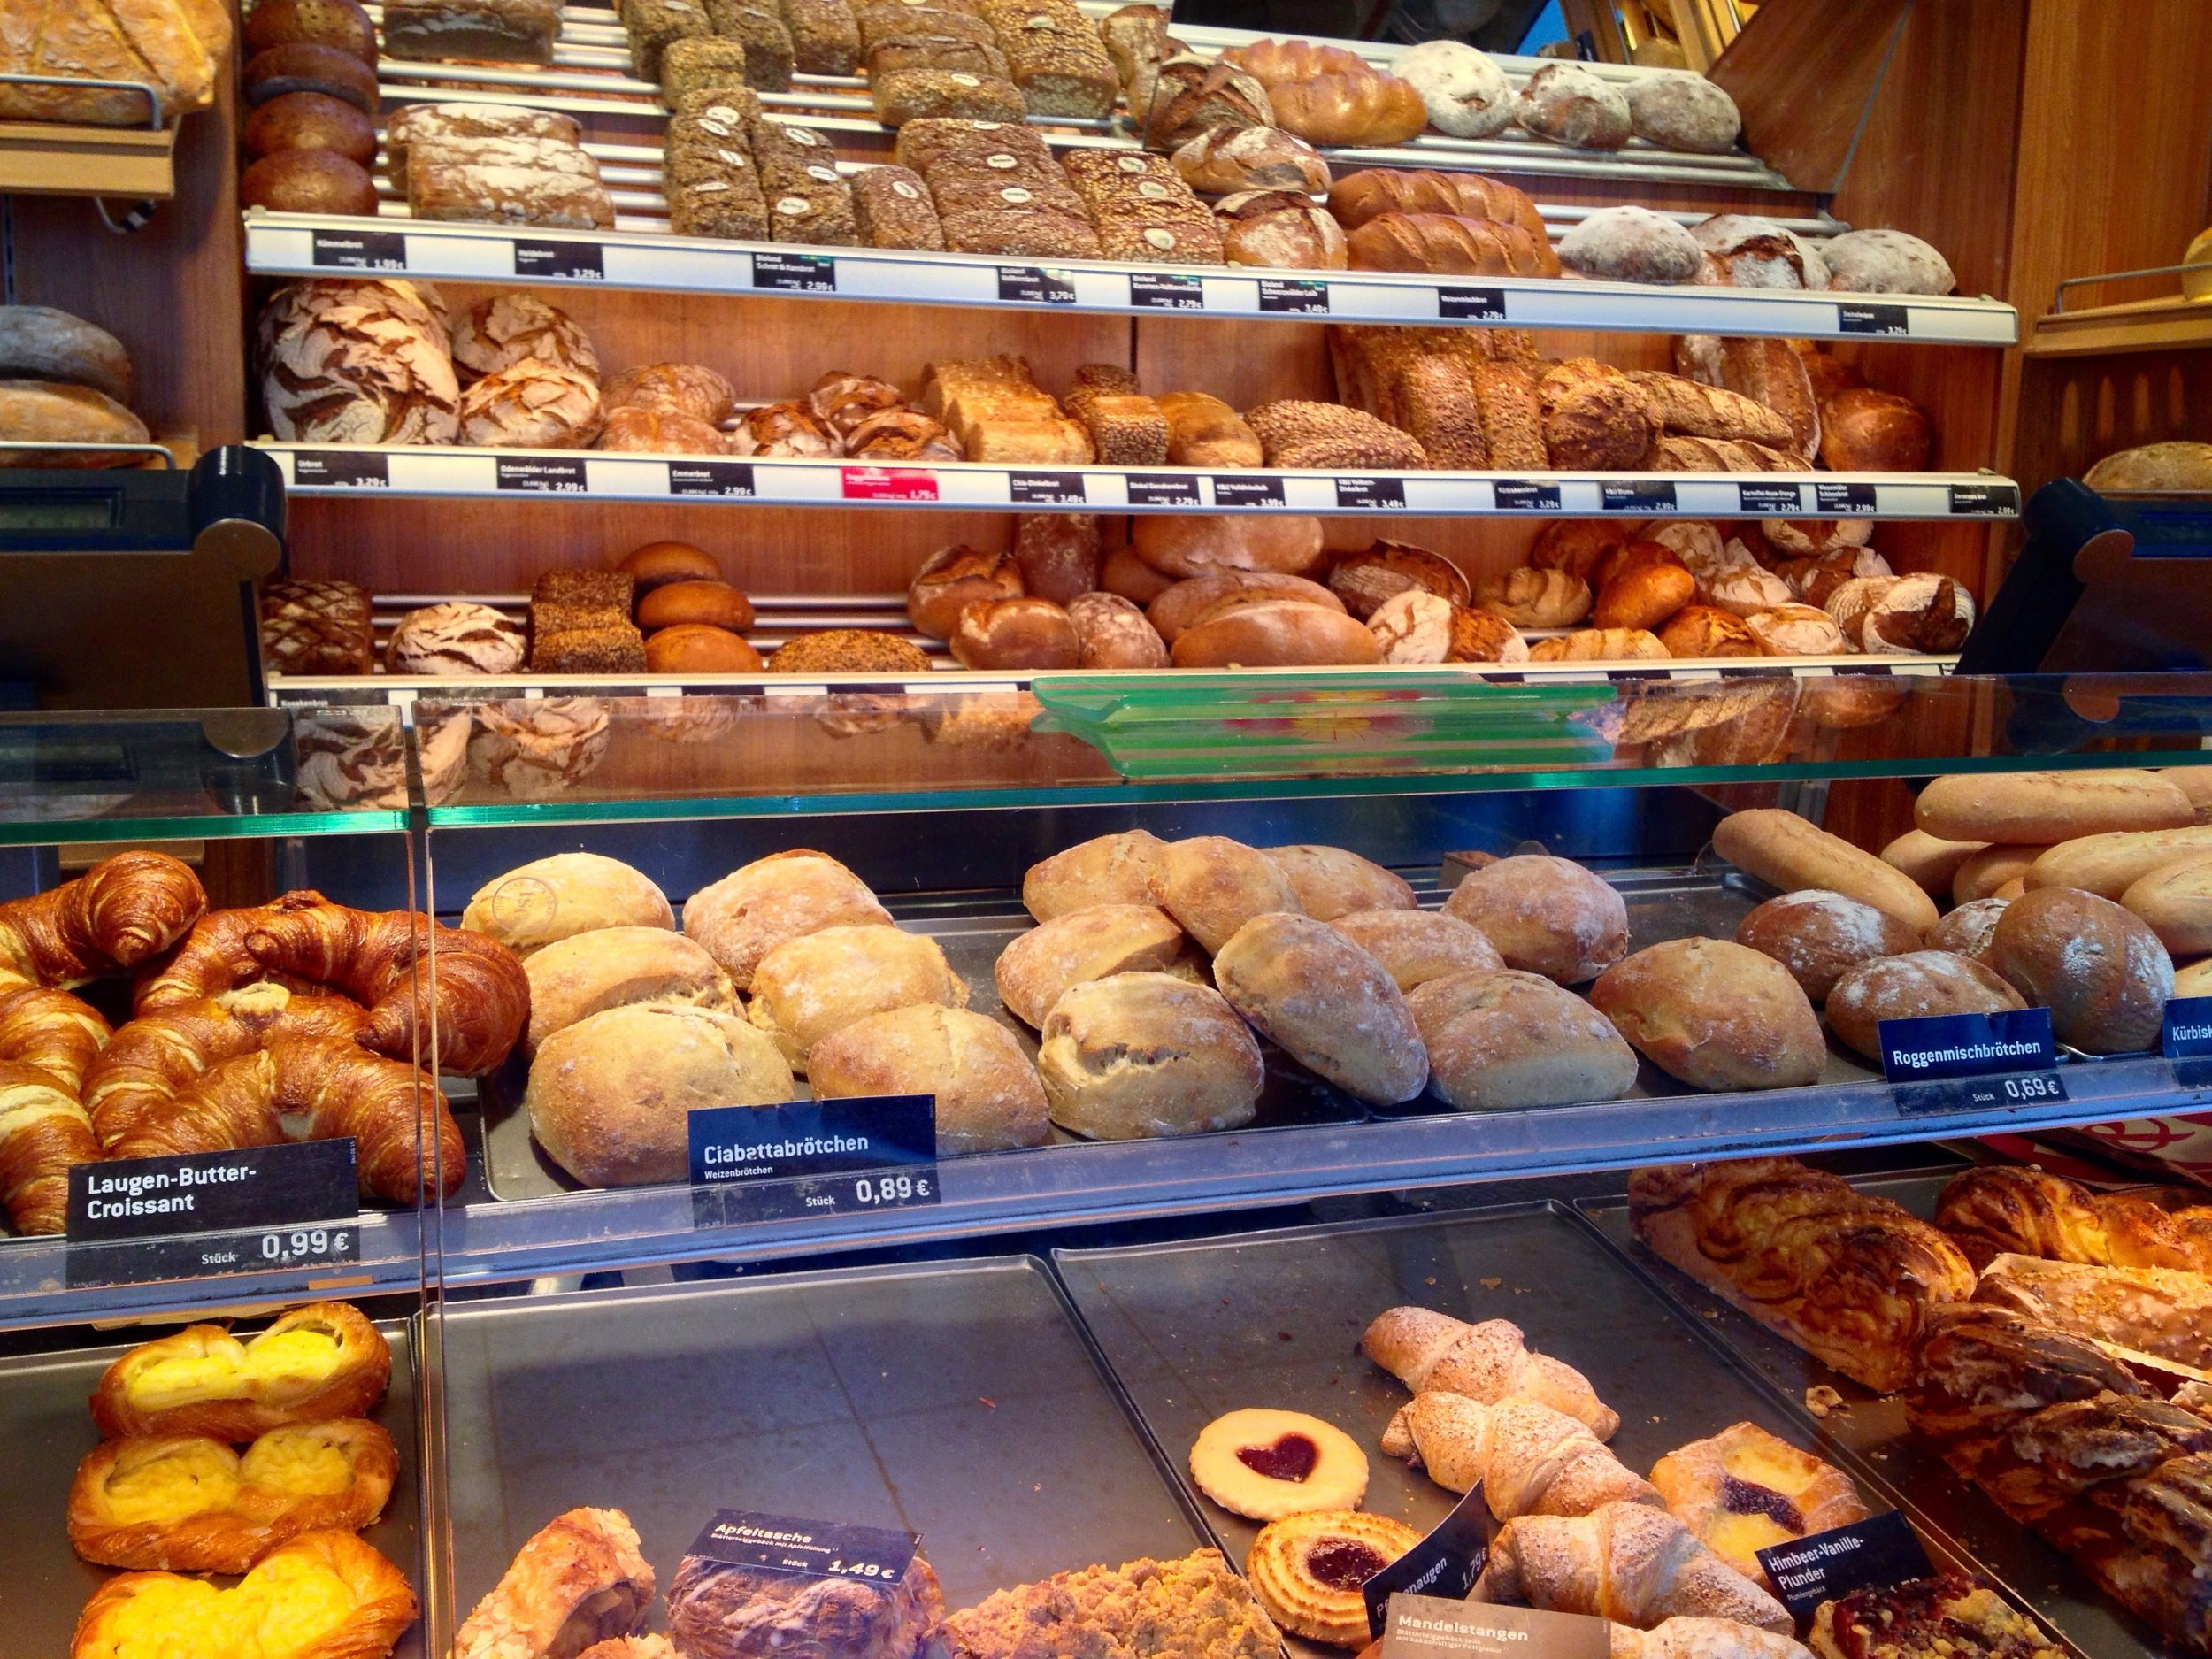 Half of our bakery